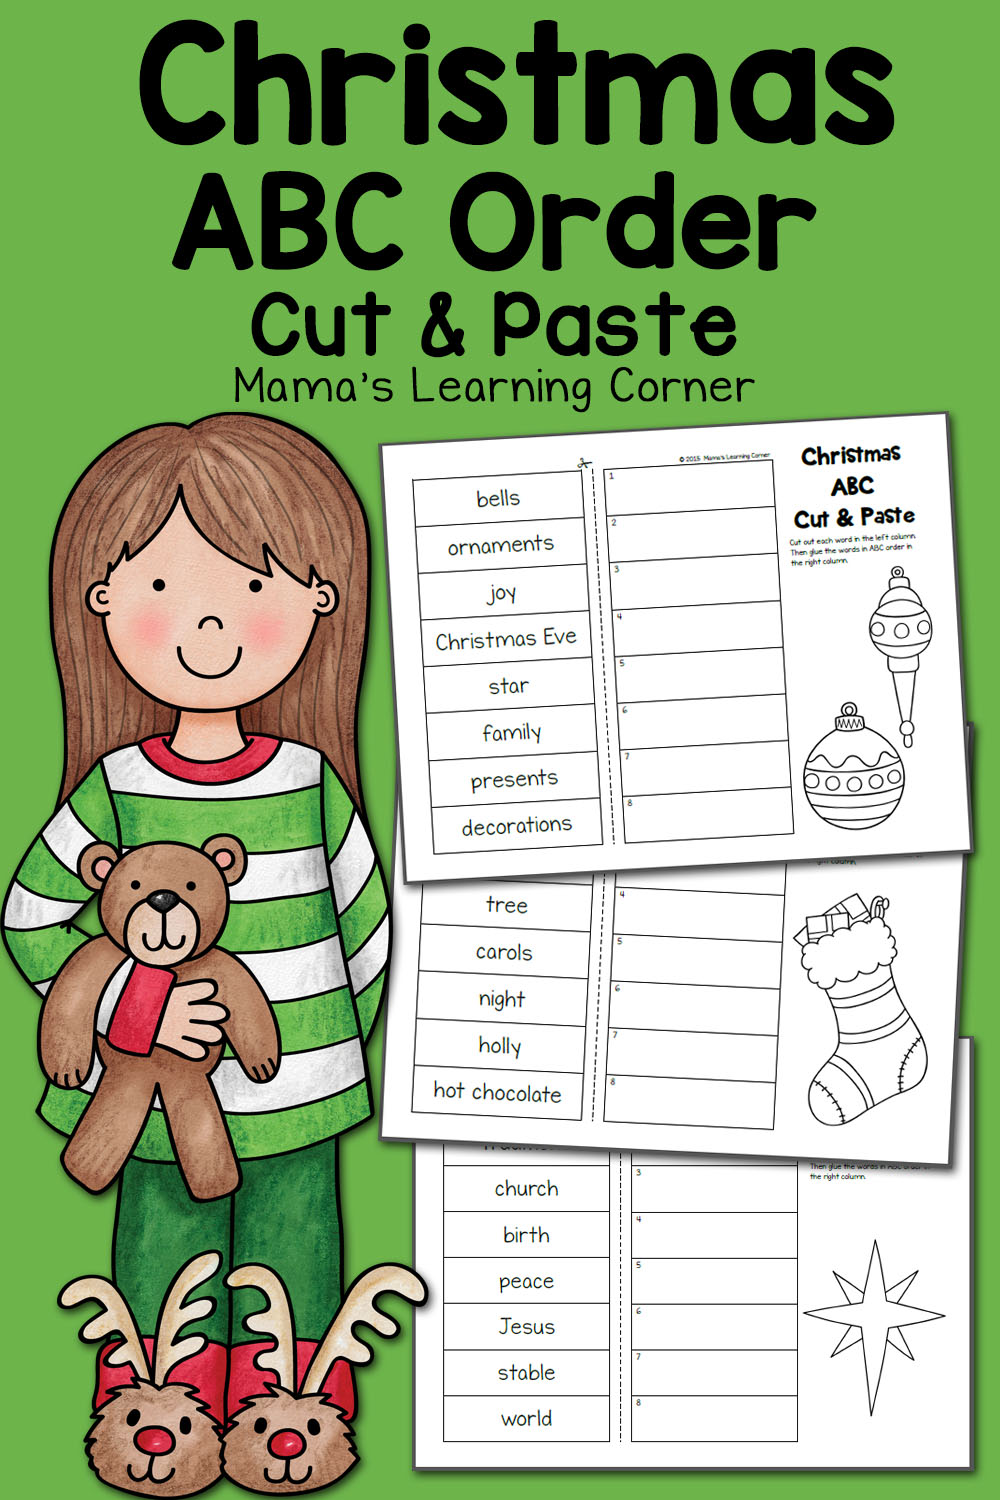 medium resolution of Christmas ABC Order Worksheets: Cut and Paste! - Mamas Learning Corner